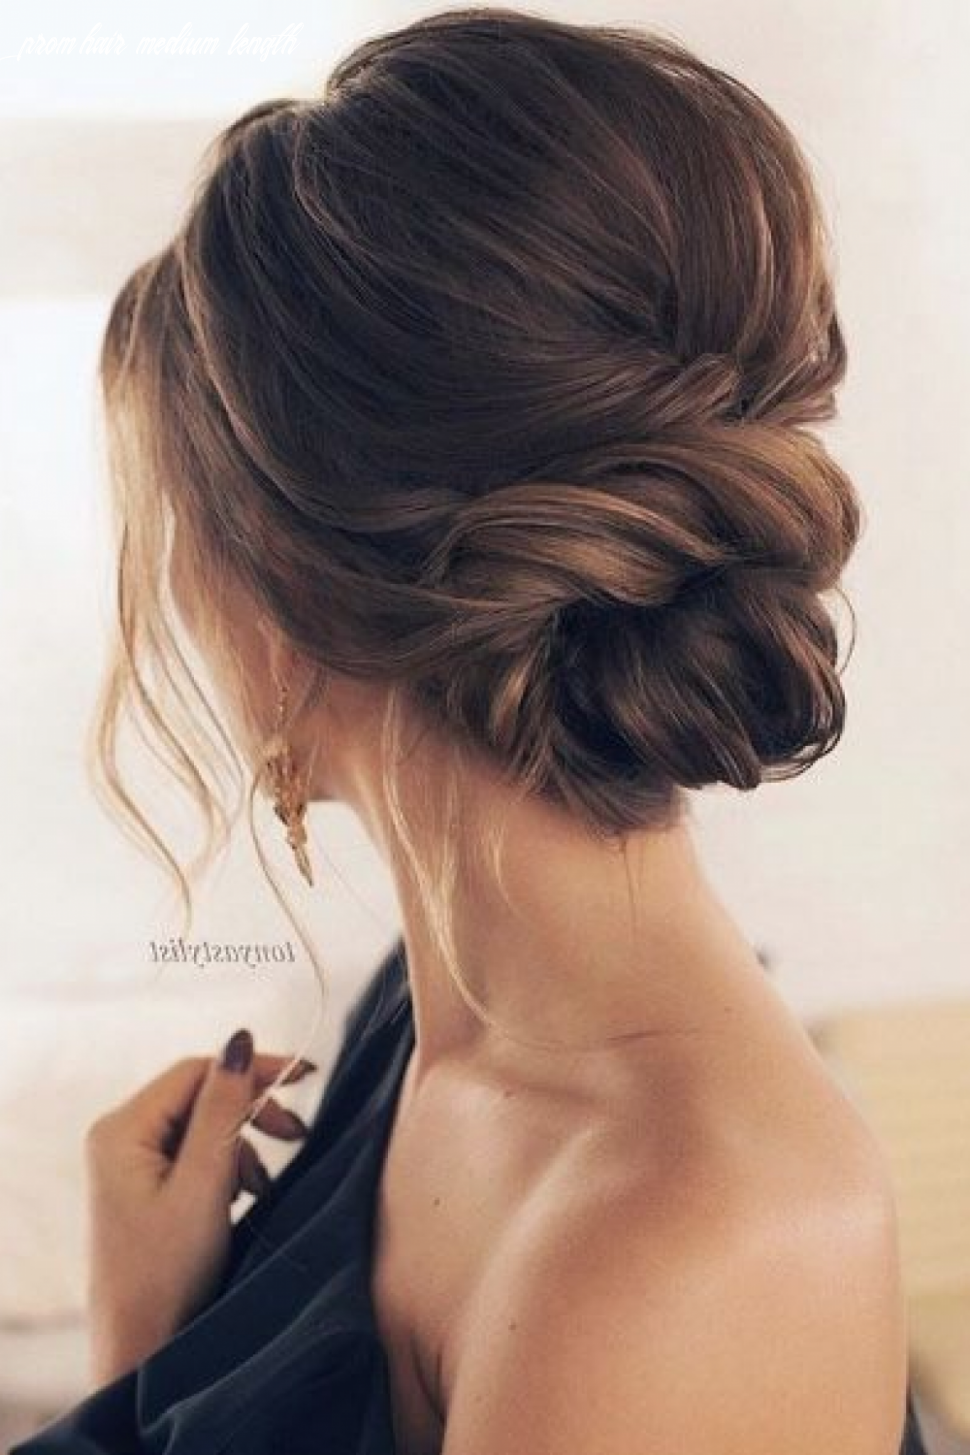 12 Wonderful Prom Hair Ideas & Designs | Hair styles, Long hair ...